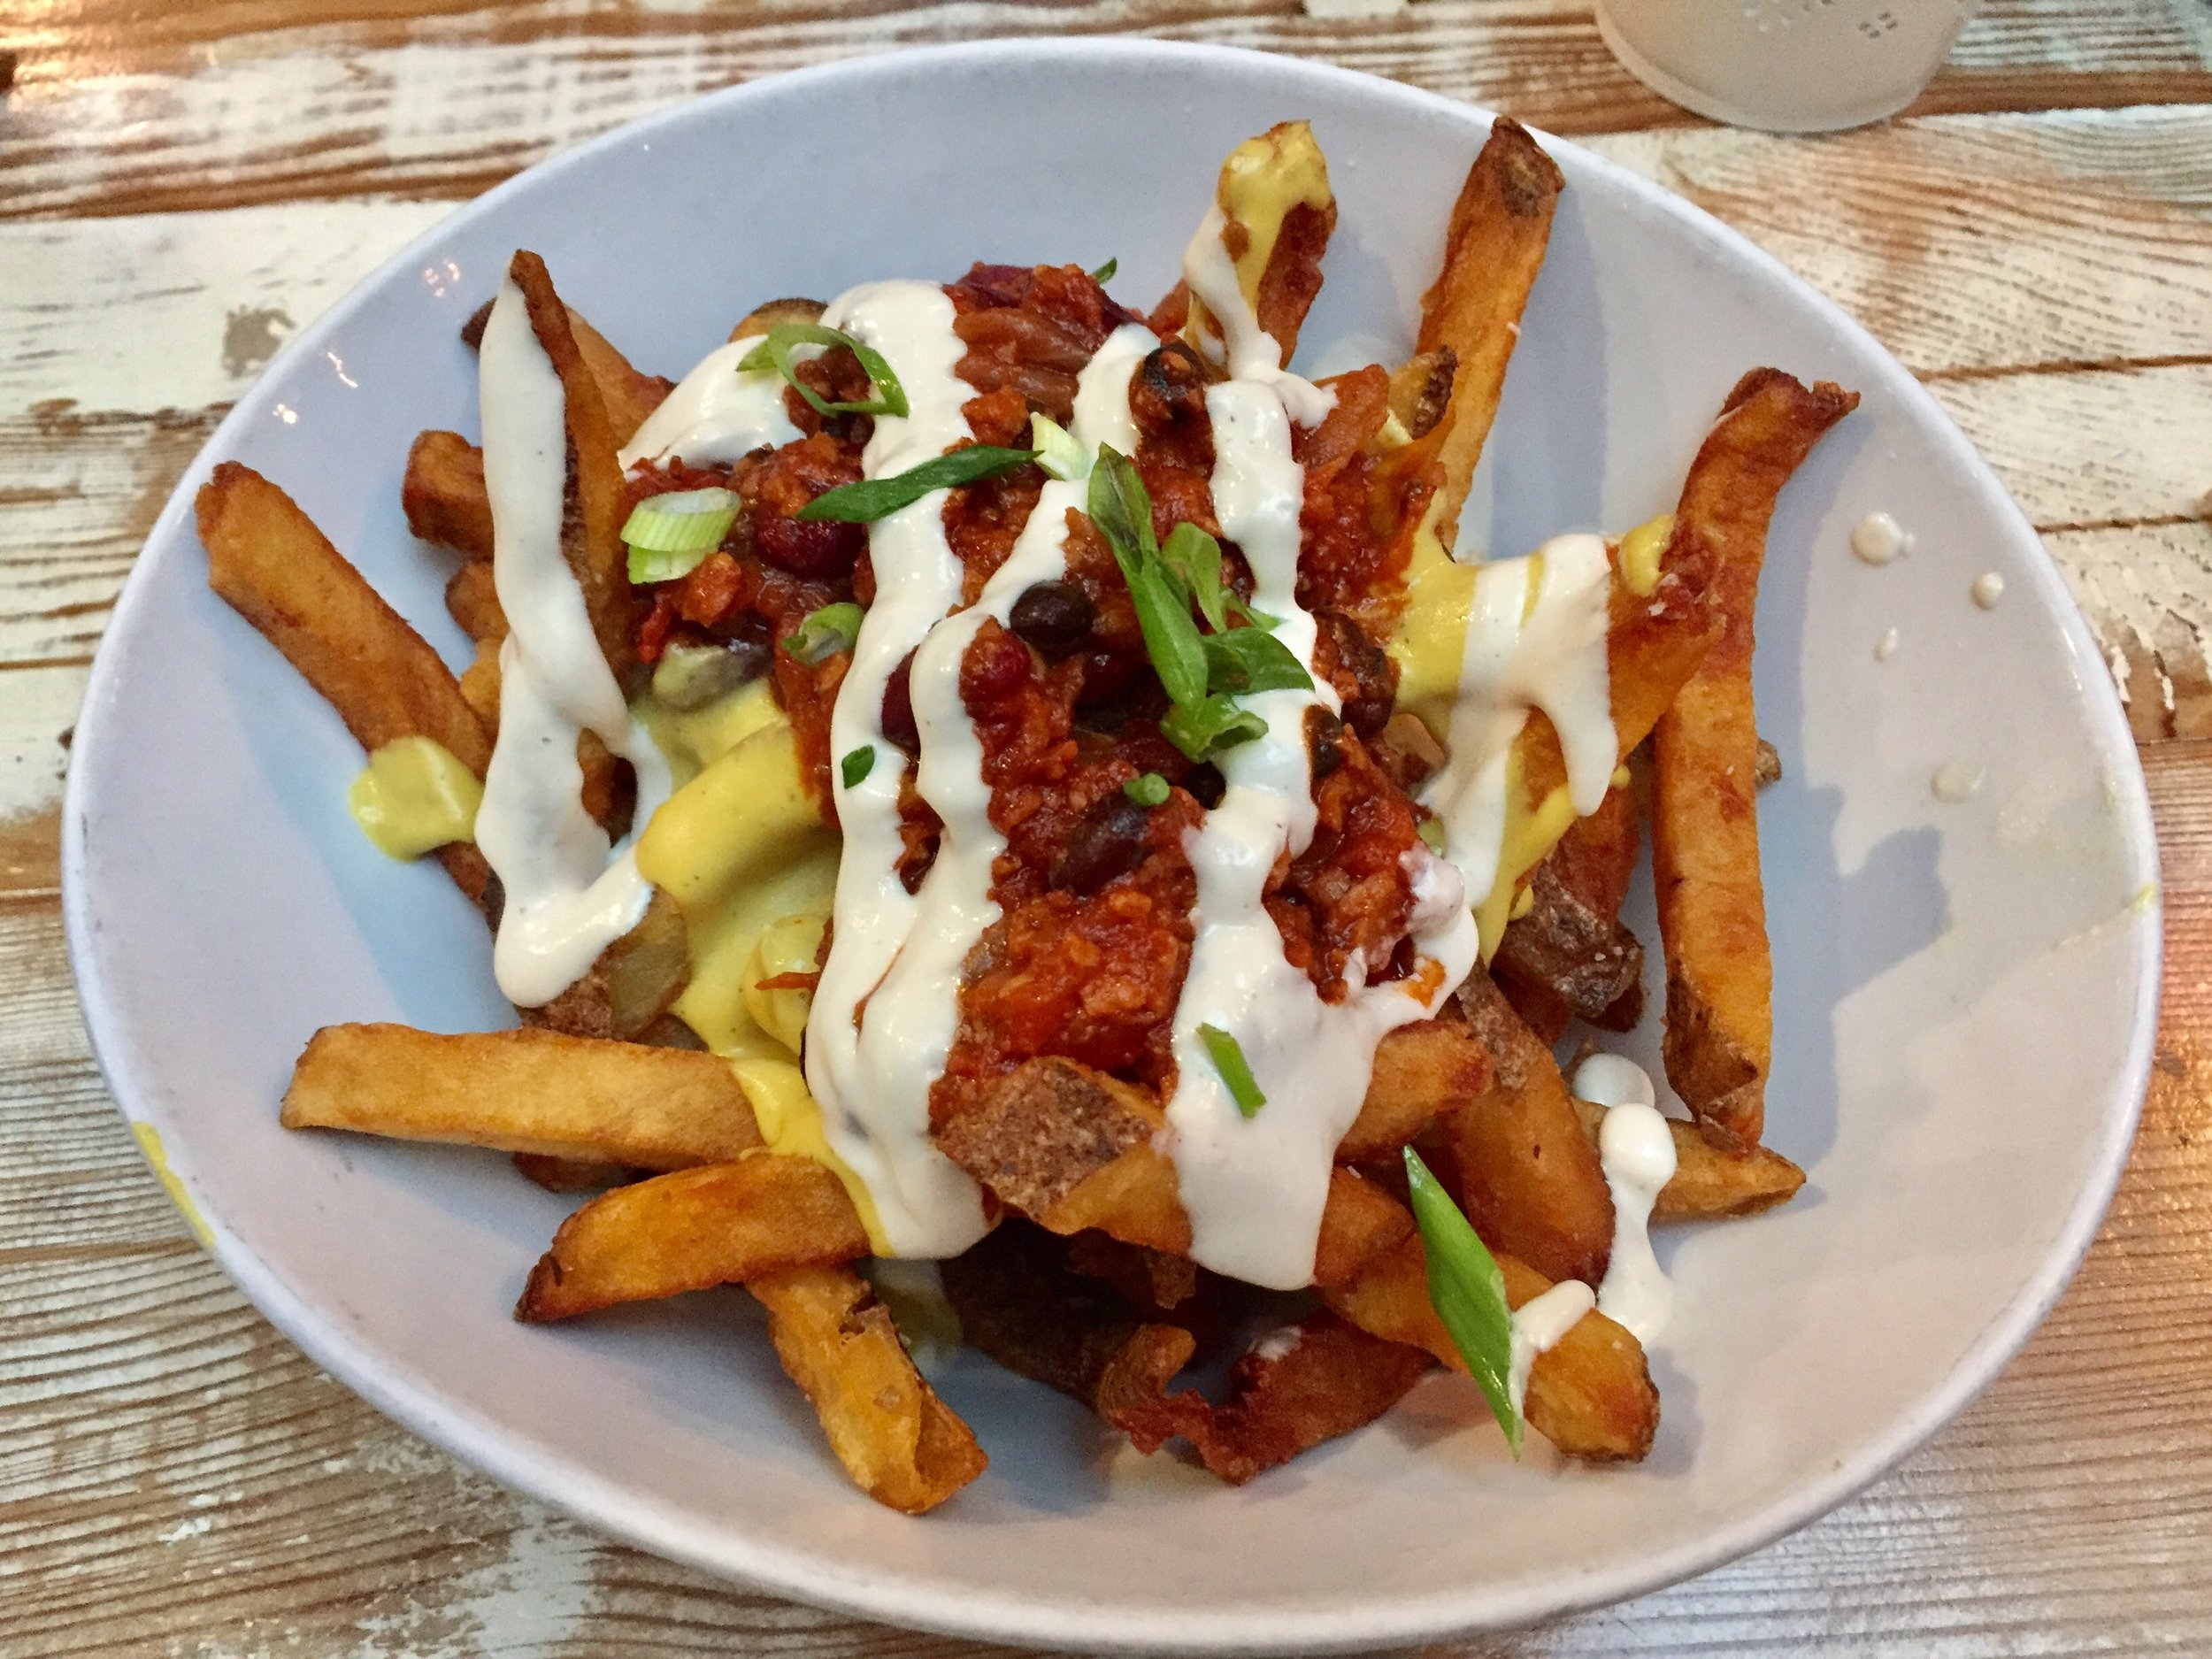 Vegan chili cheez fries from Meet in Gastown, Vancouver